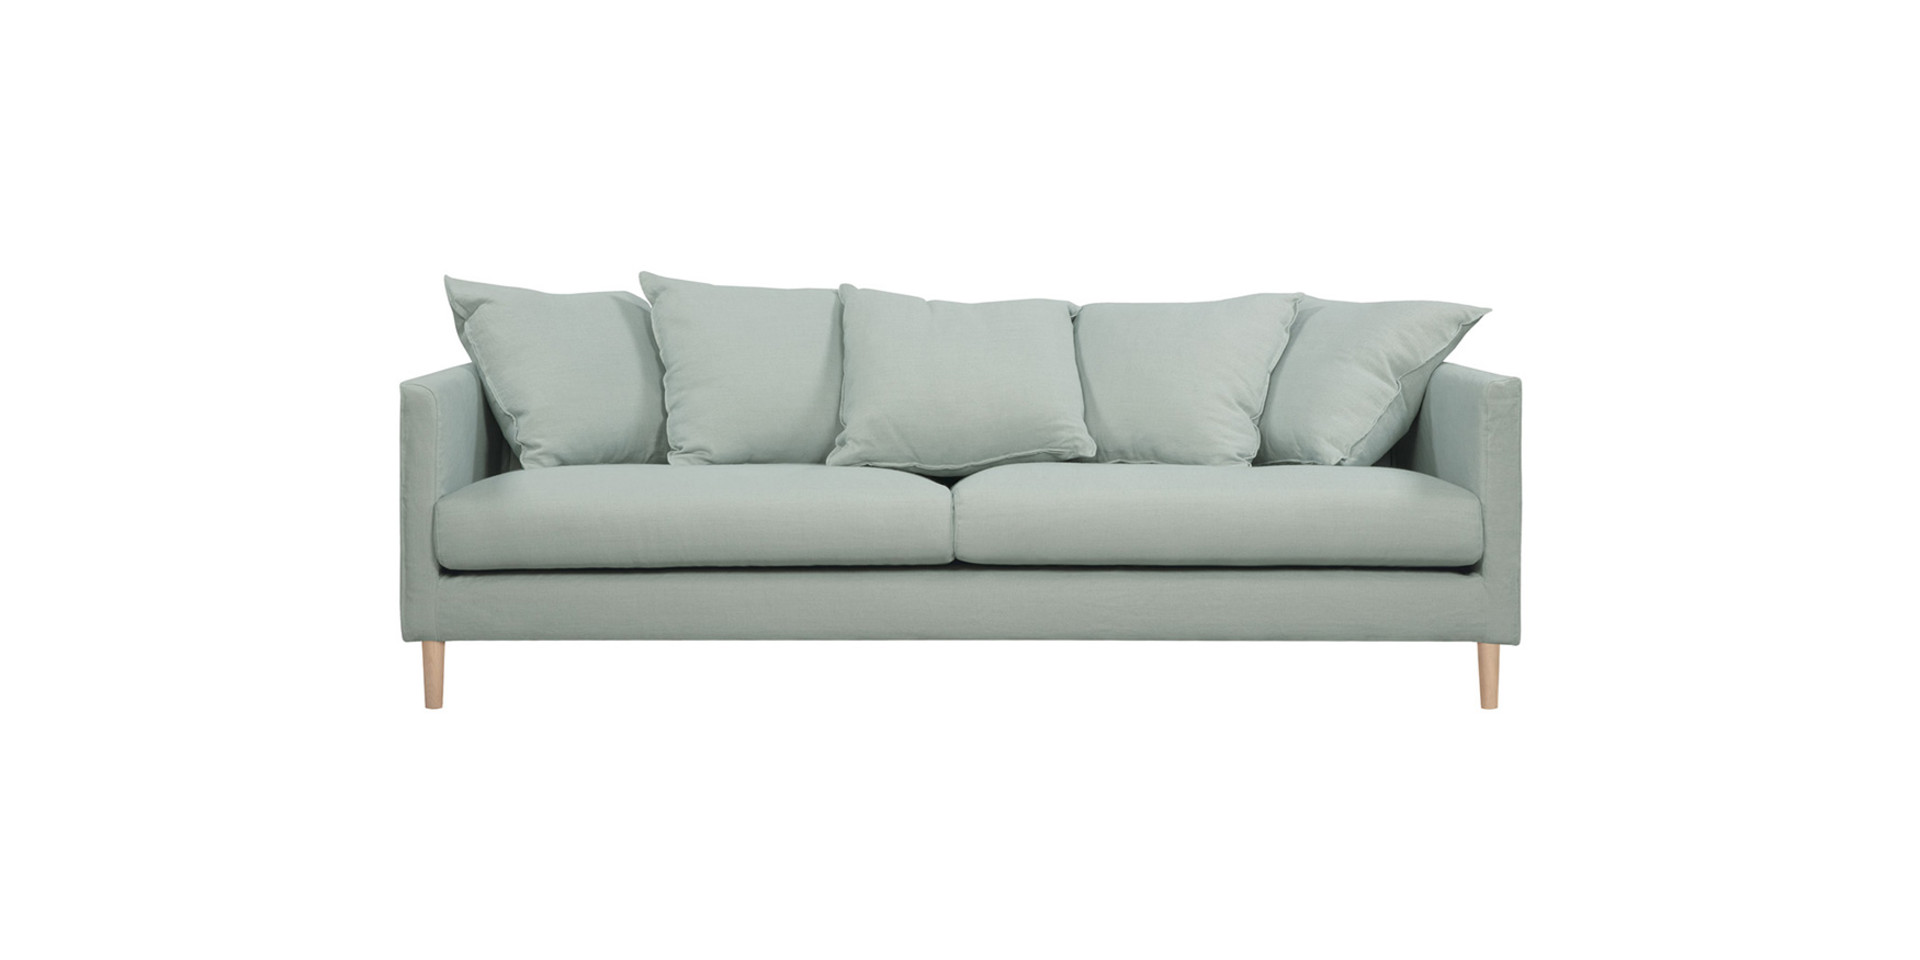 BIANCA_3seater_small_cushions_linenP823_6_spruce_1